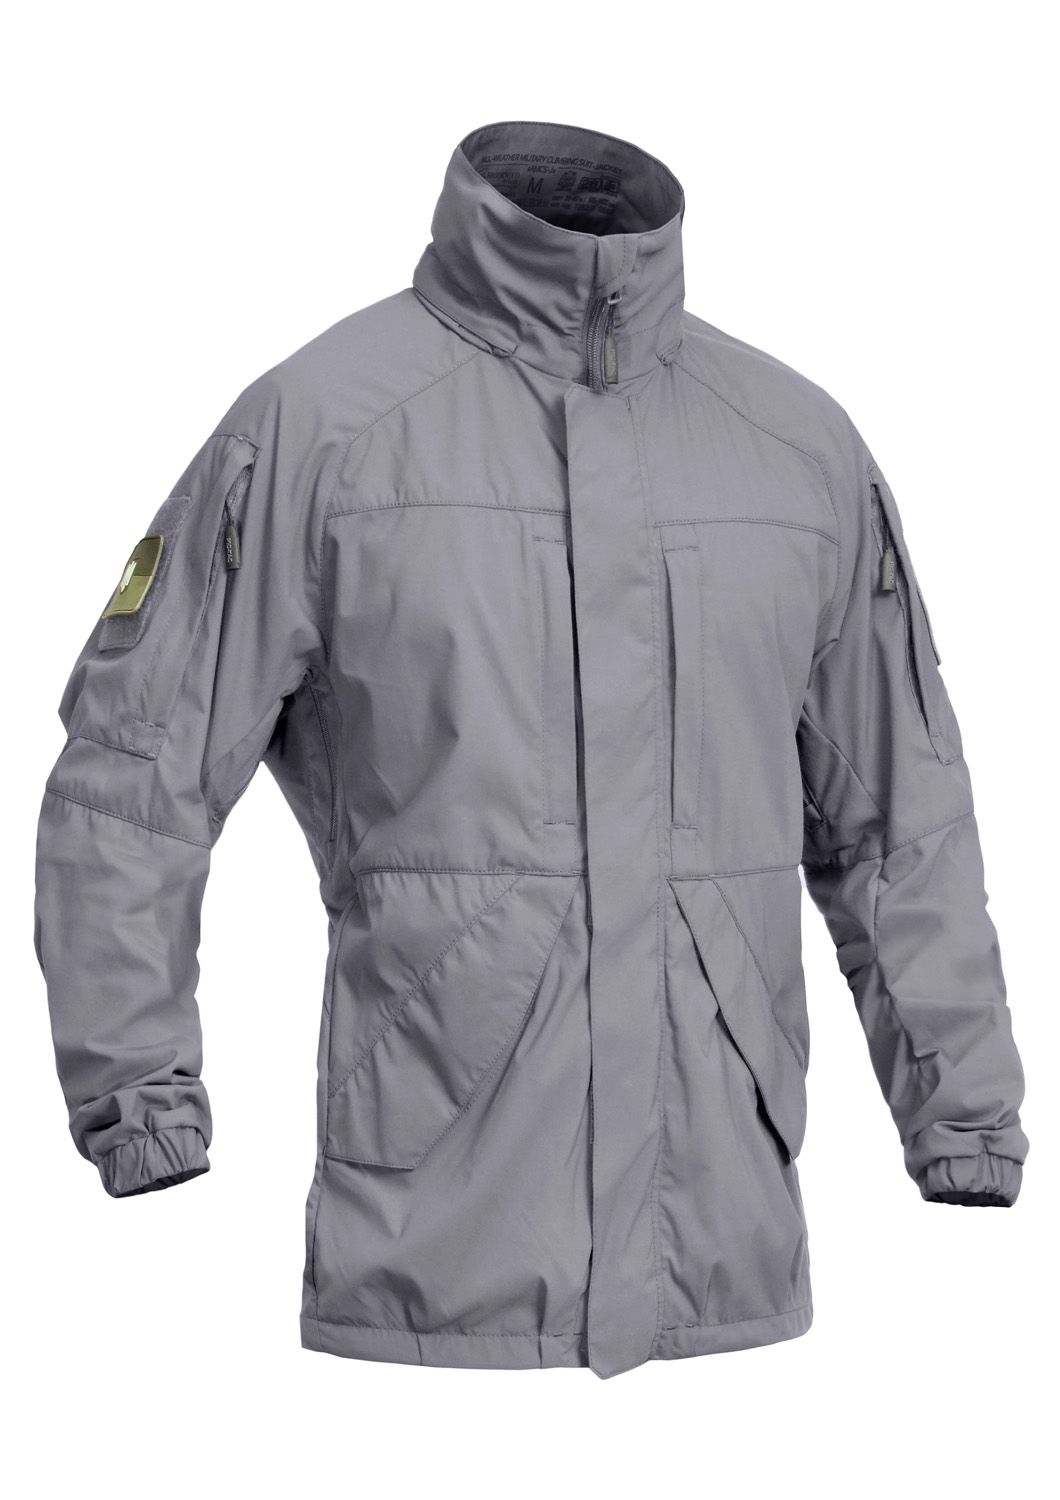 Field all-weather jacket